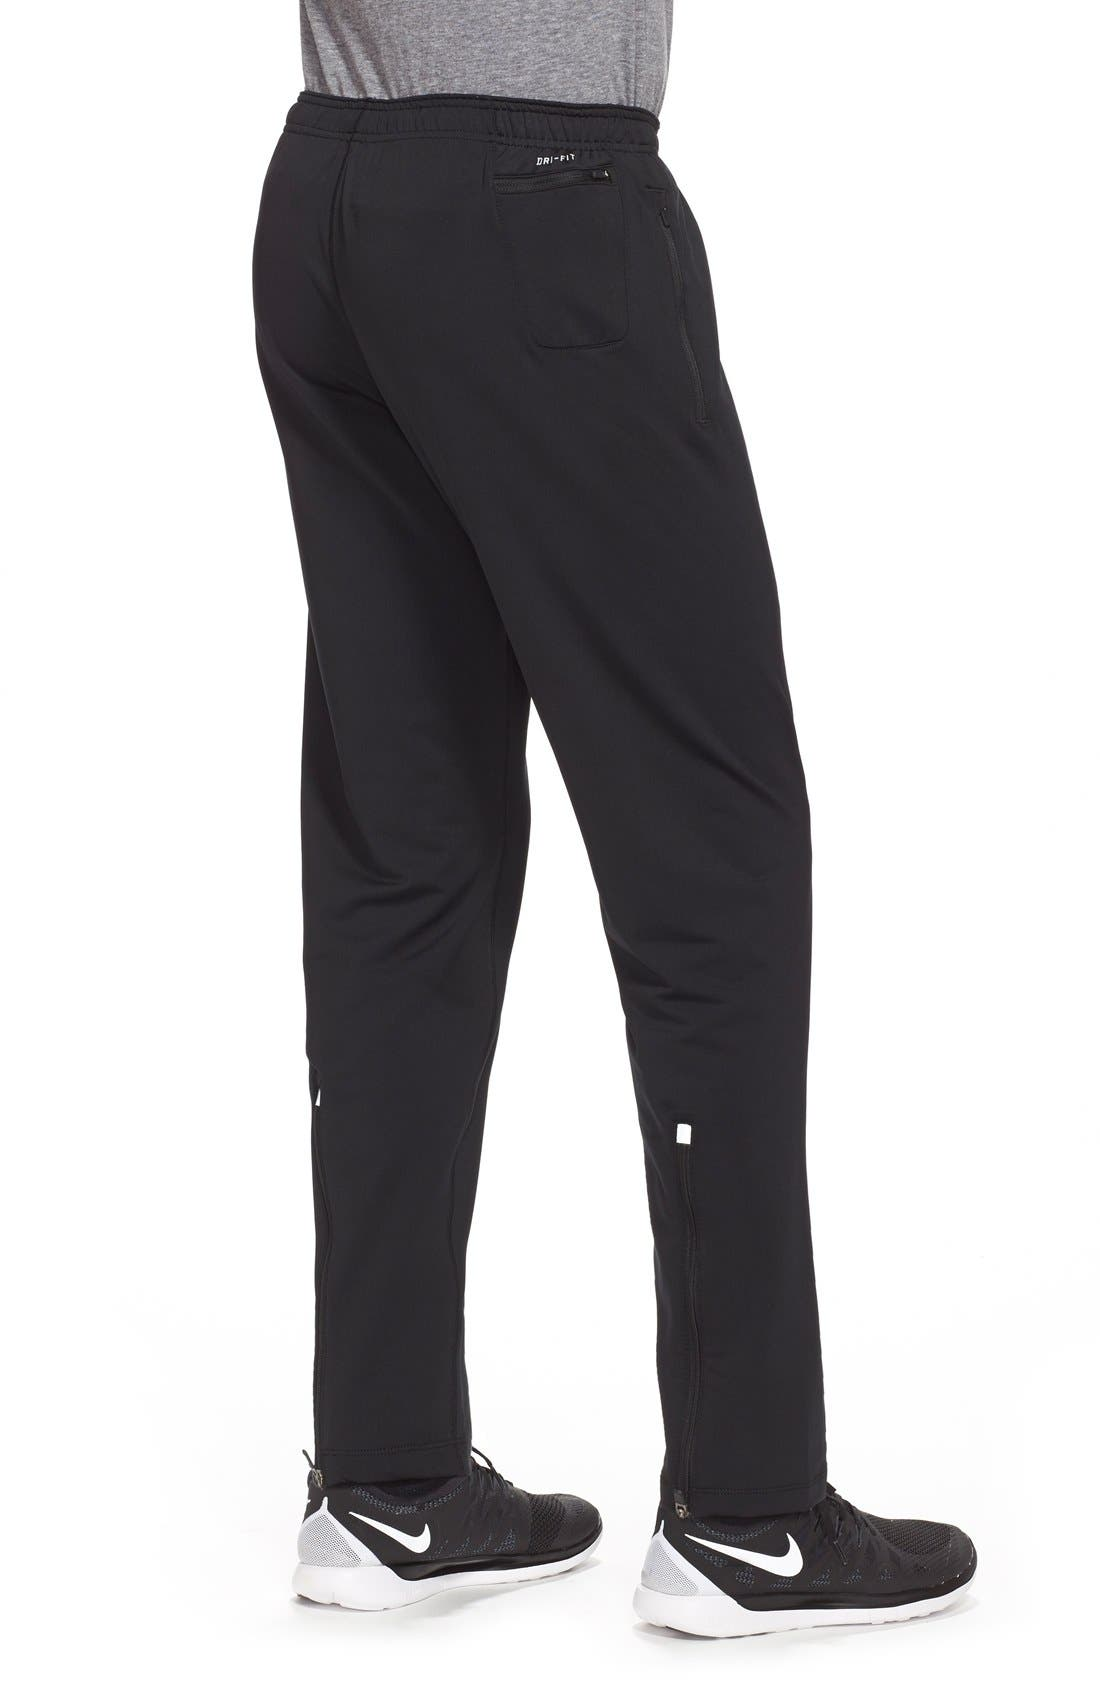 'Y20' Tapered Fit Dri-FIT Running Stretch Pants,                             Alternate thumbnail 2, color,                             010